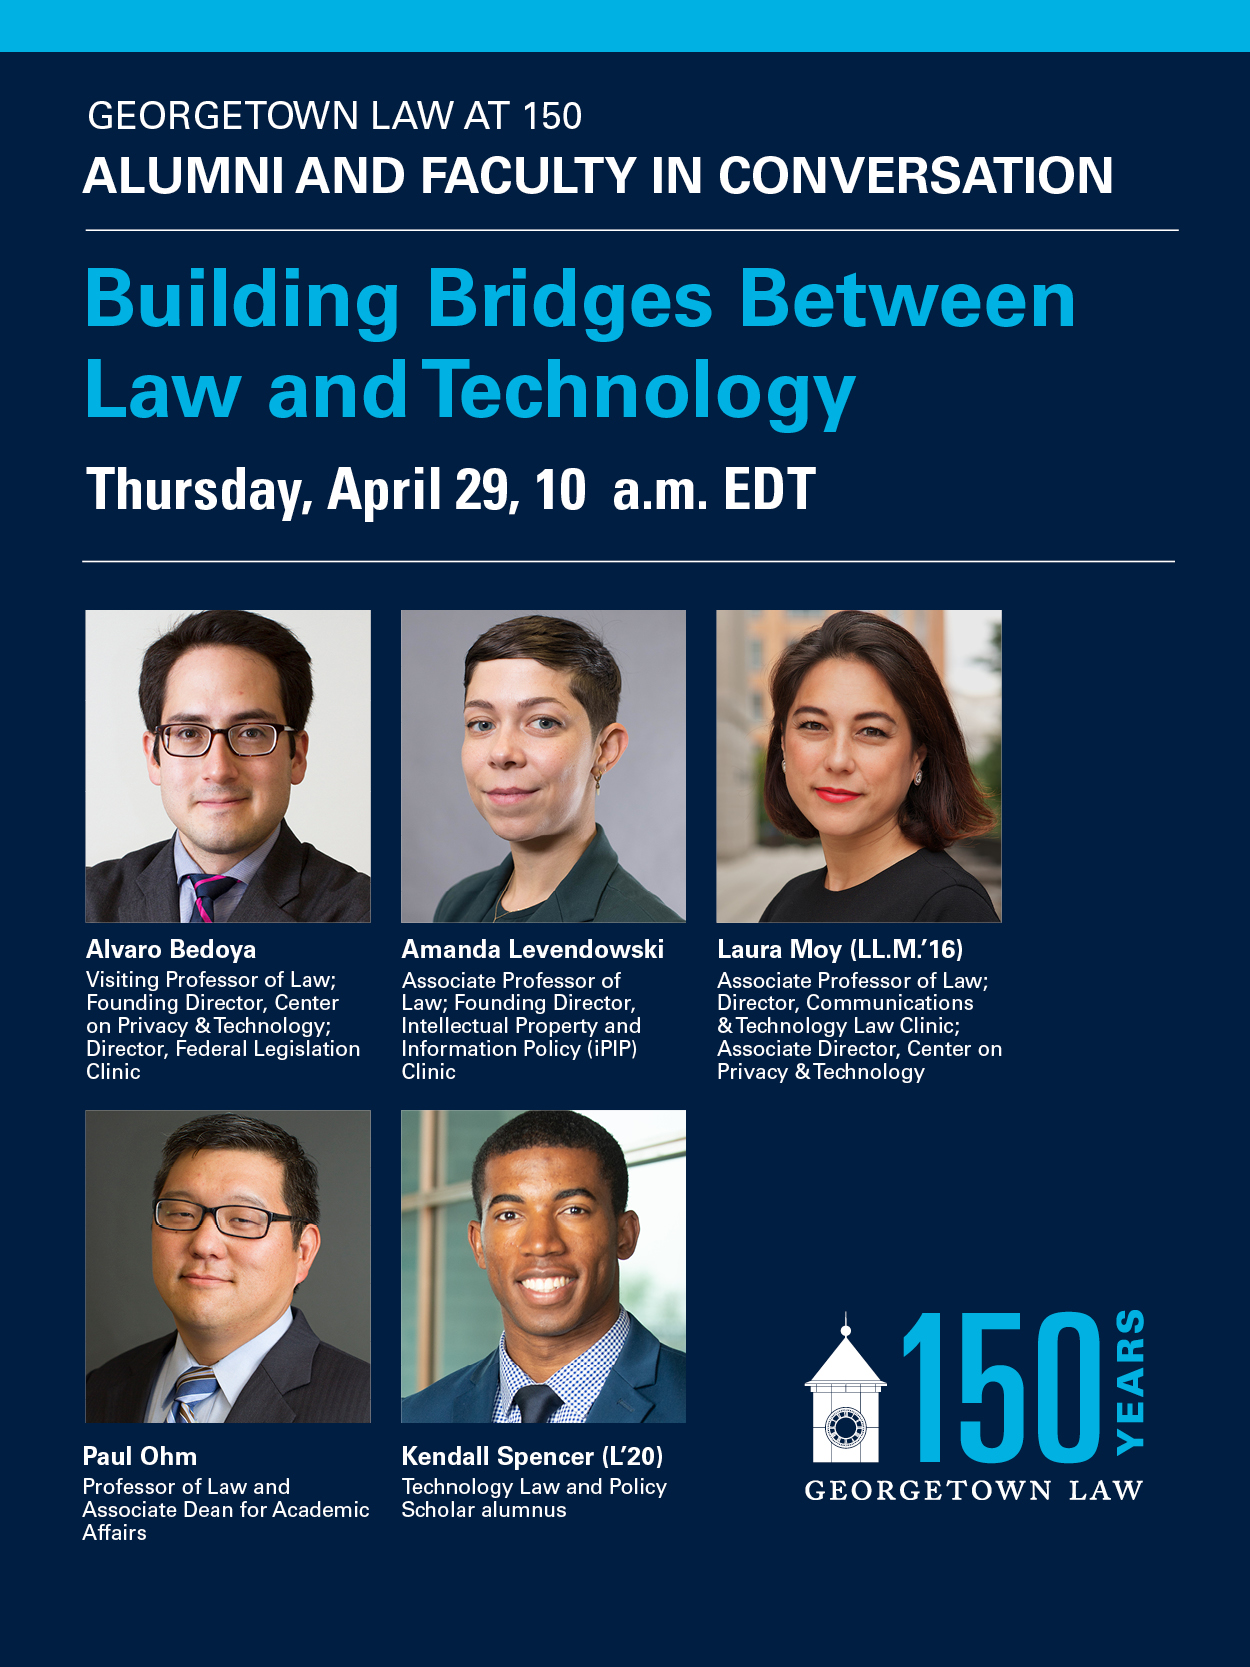 Promotional Graphic Image for 150th Anniversary Virtual Event: Building Bridges Between Law and Technology